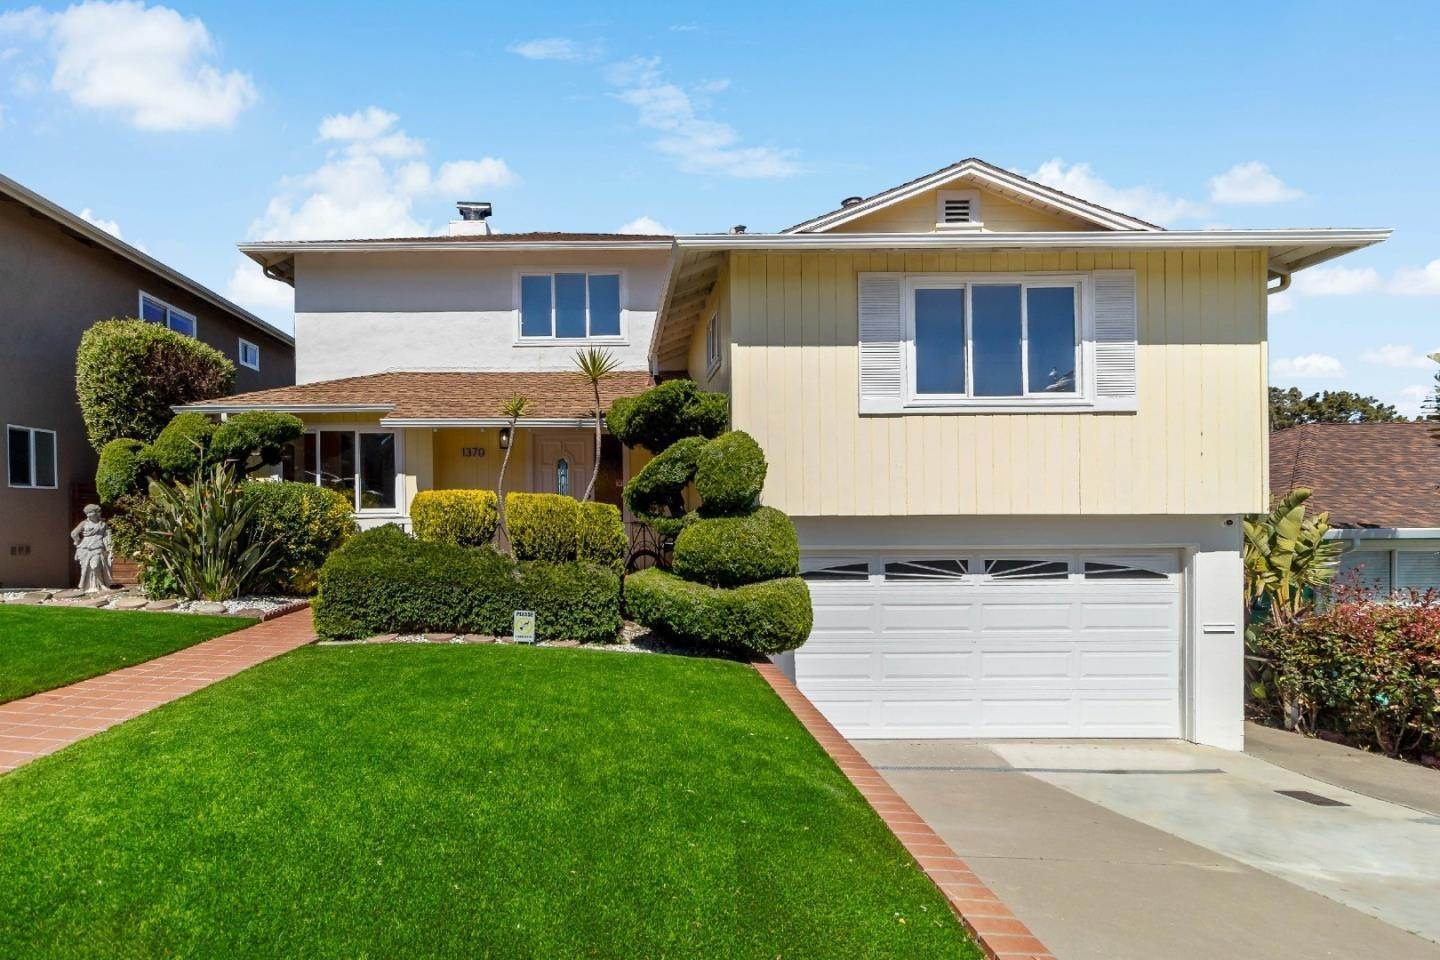 Single Family Homes for Sale at 1370 Claremont Drive San Bruno, California 94066 United States